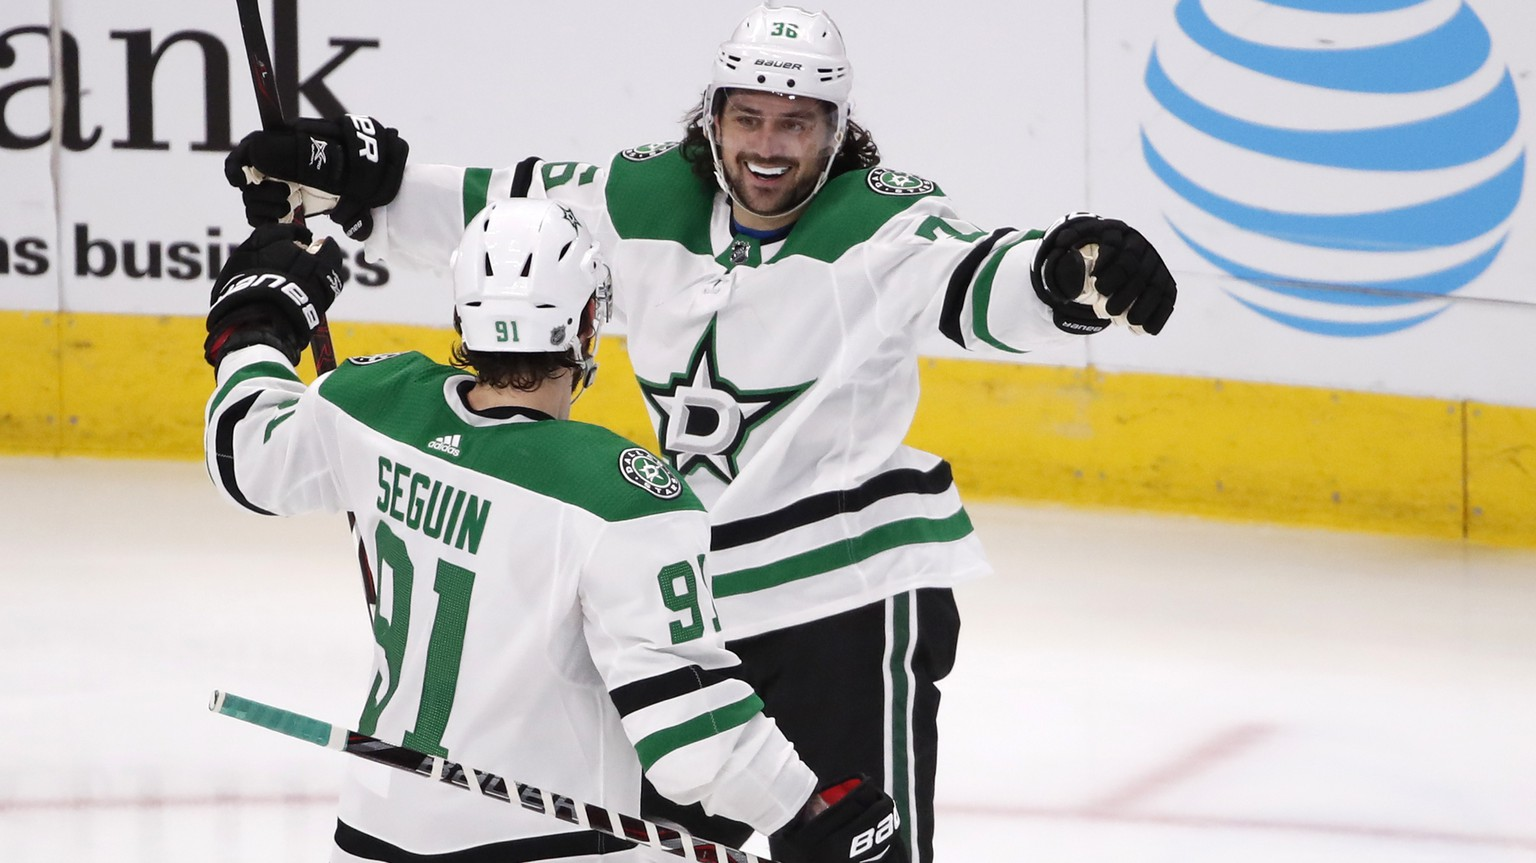 Dallas Stars' Mats Zuccarello celebrates with teammate Tyler Seguin (91) after his goal during the second period of an NHL hockey game against the Chicago Blackhawks Sunday, Feb. 24, 2019, in Chicago. (AP Photo/Jeff Haynes)